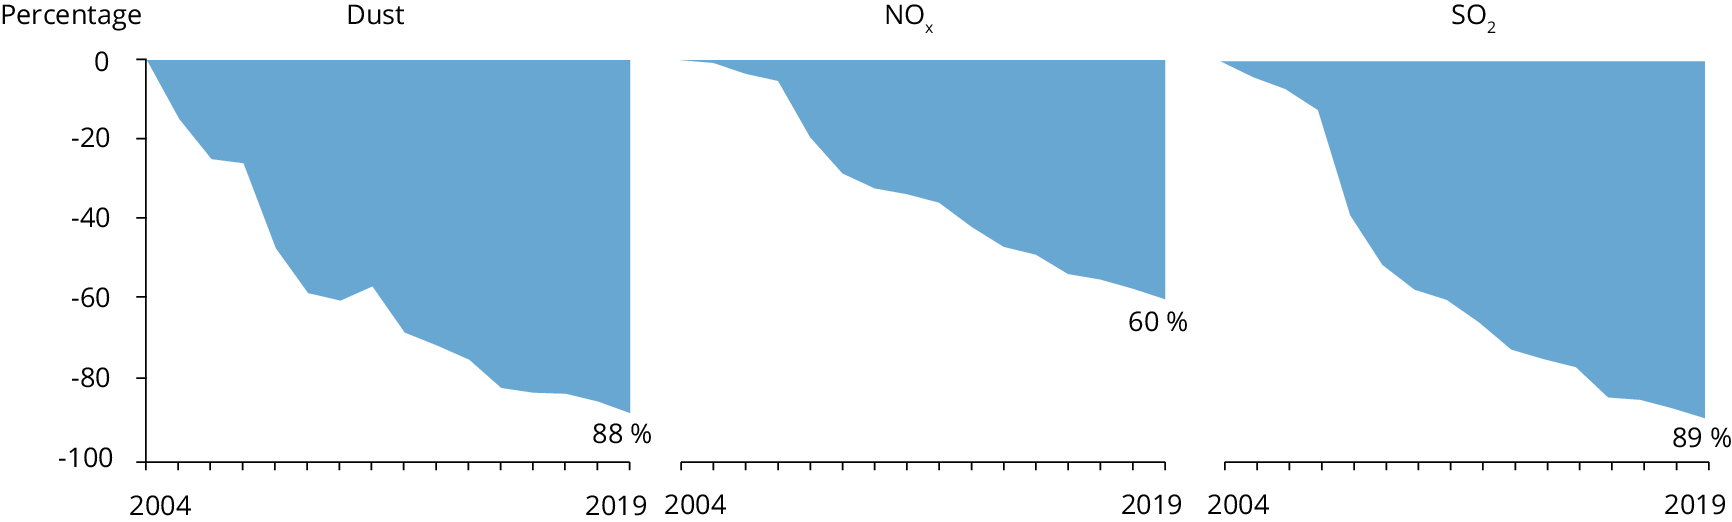 Emission reductions for dust, nitrogen oxides and sulphur dioxide from large combustion plants in the EU-27